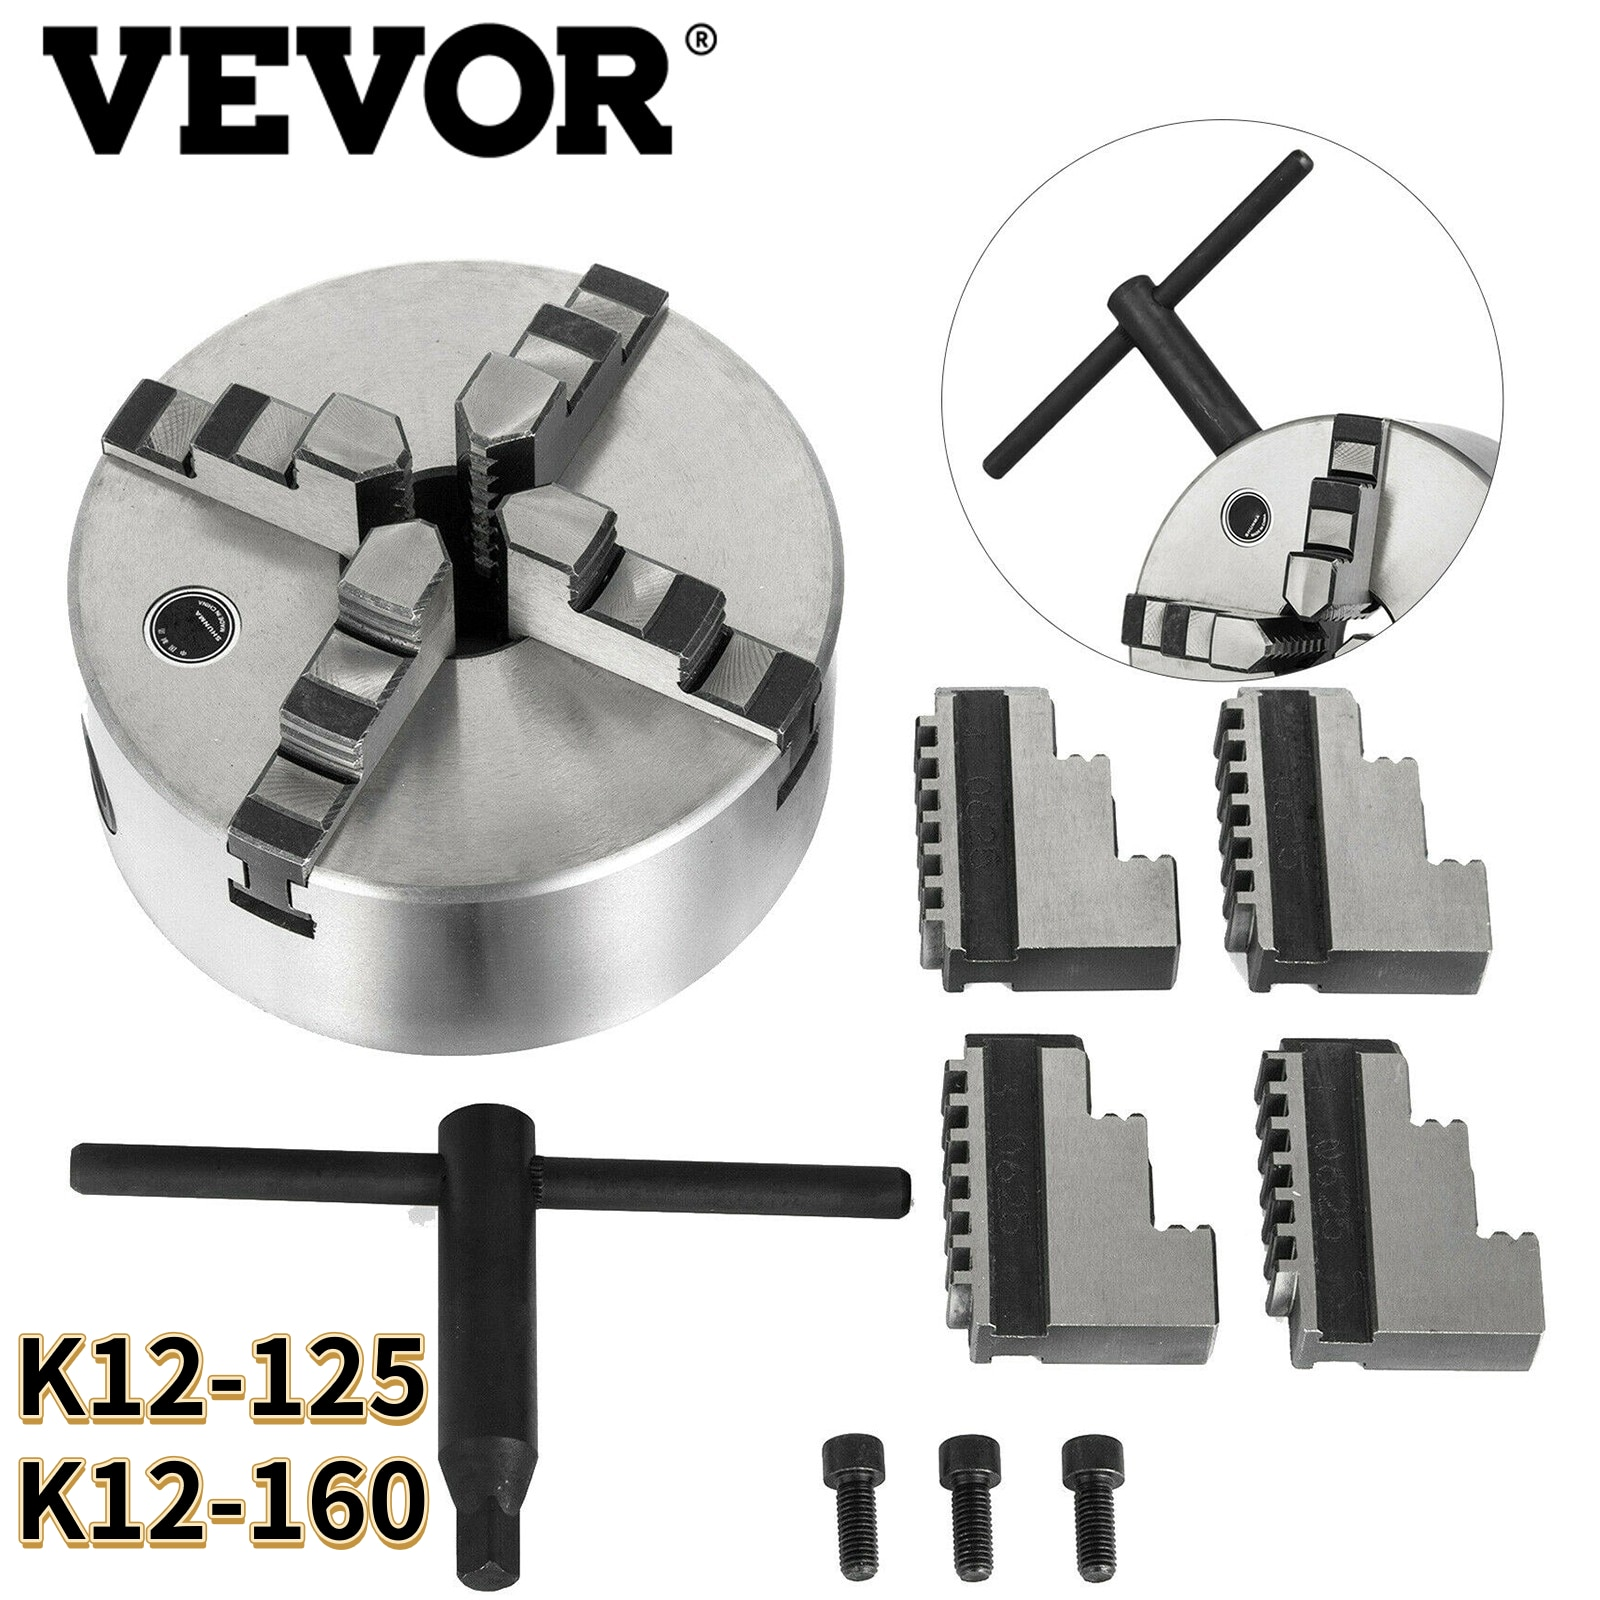 VEVOR 4 Jaw Self-Centering Manual Lathe Chuck W/ 3PCS Mounting Bolt K12-125 K12-160 for Grinding Milling Machines High Precision